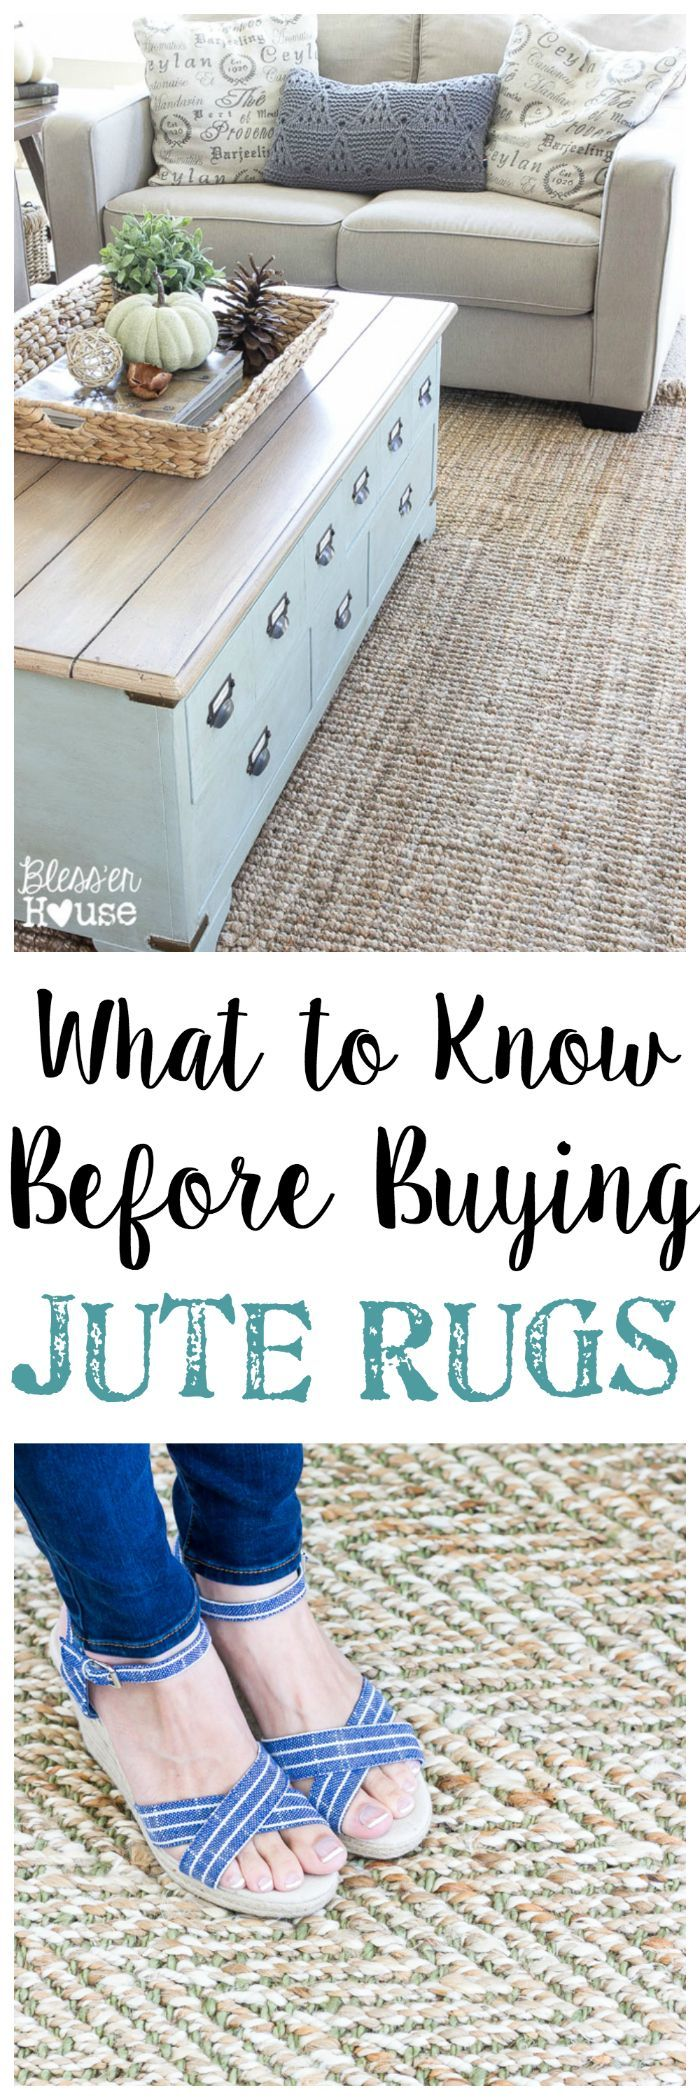 25 Best Ideas About Jute Rug On Pinterest Dark Gray